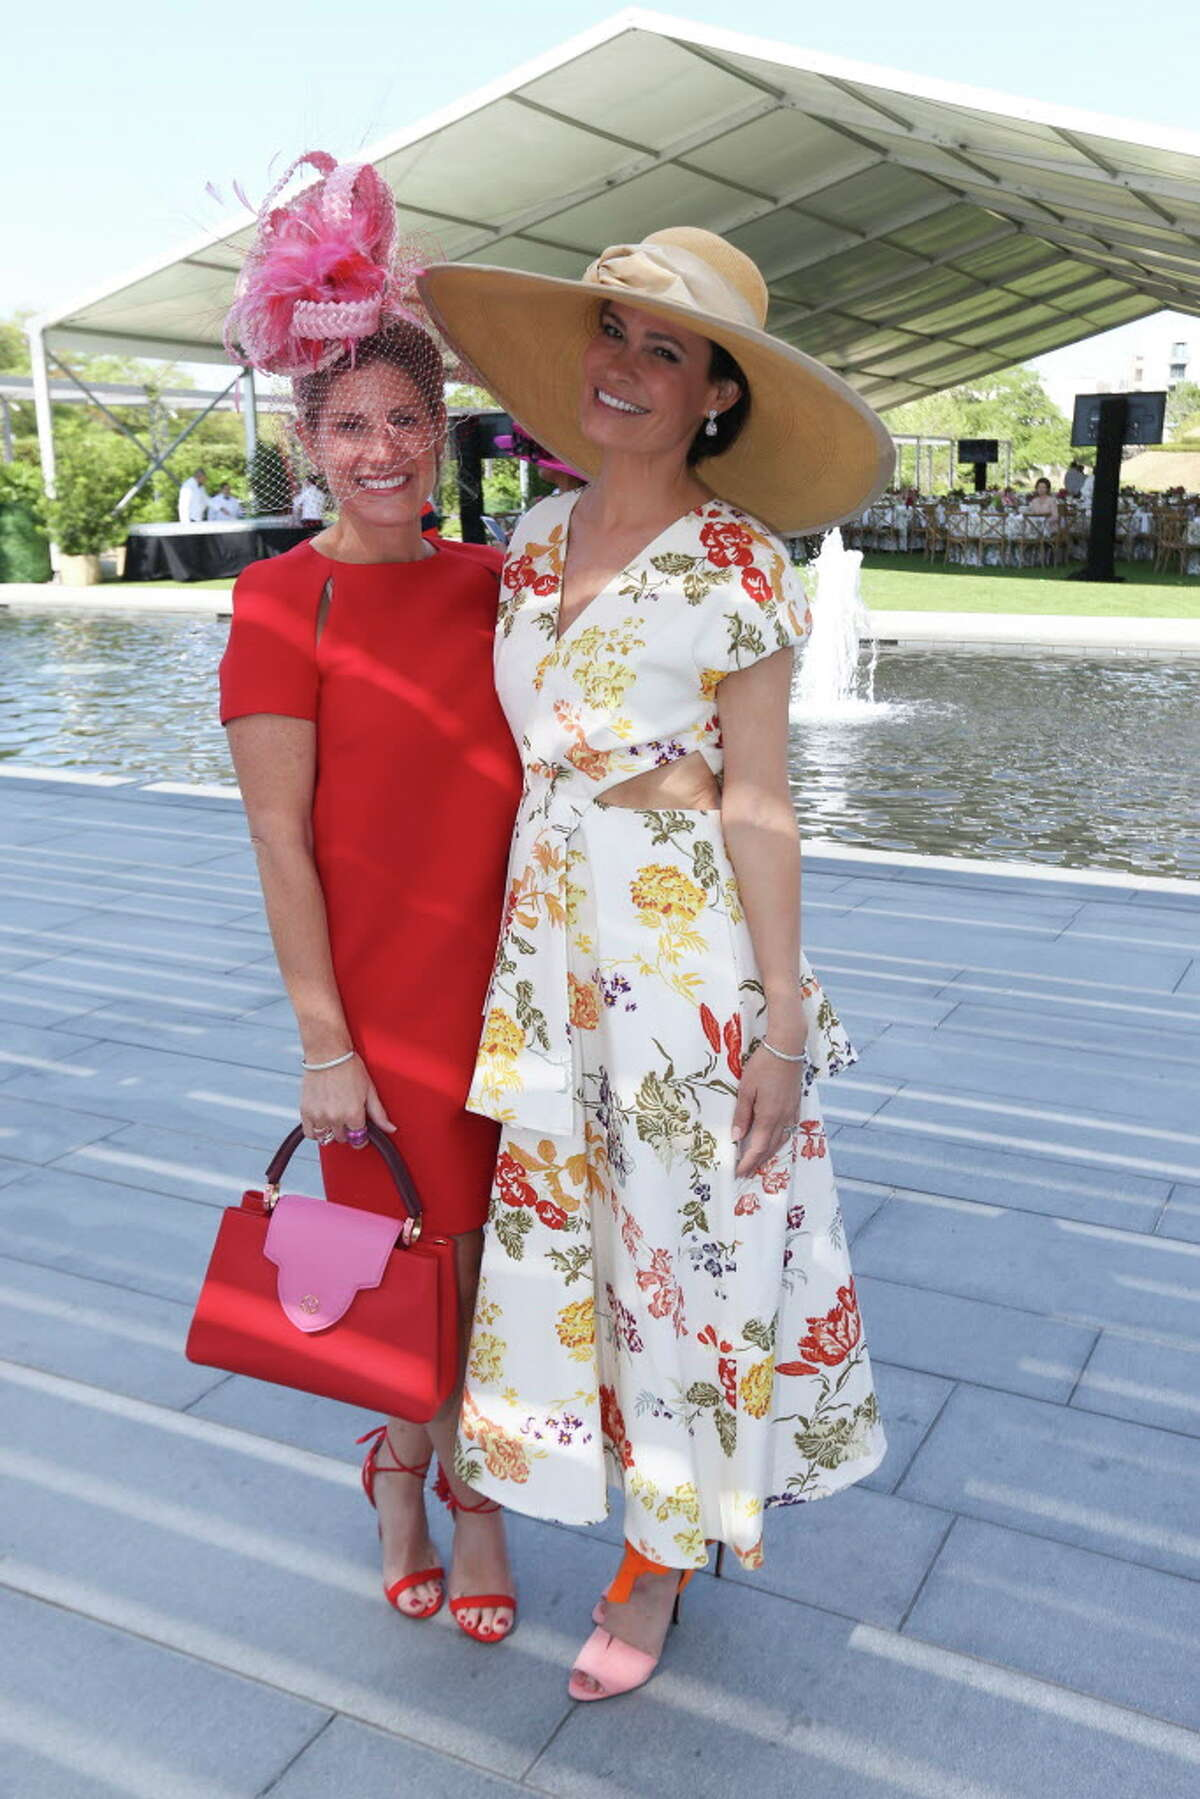 Hats in the Park luncheon chairs Greggory Burk, left, and Francine Ballard pose for a photograph at the Cherie Flores Garden Pavilion on Thursday, March 22, 2018, in Houston.